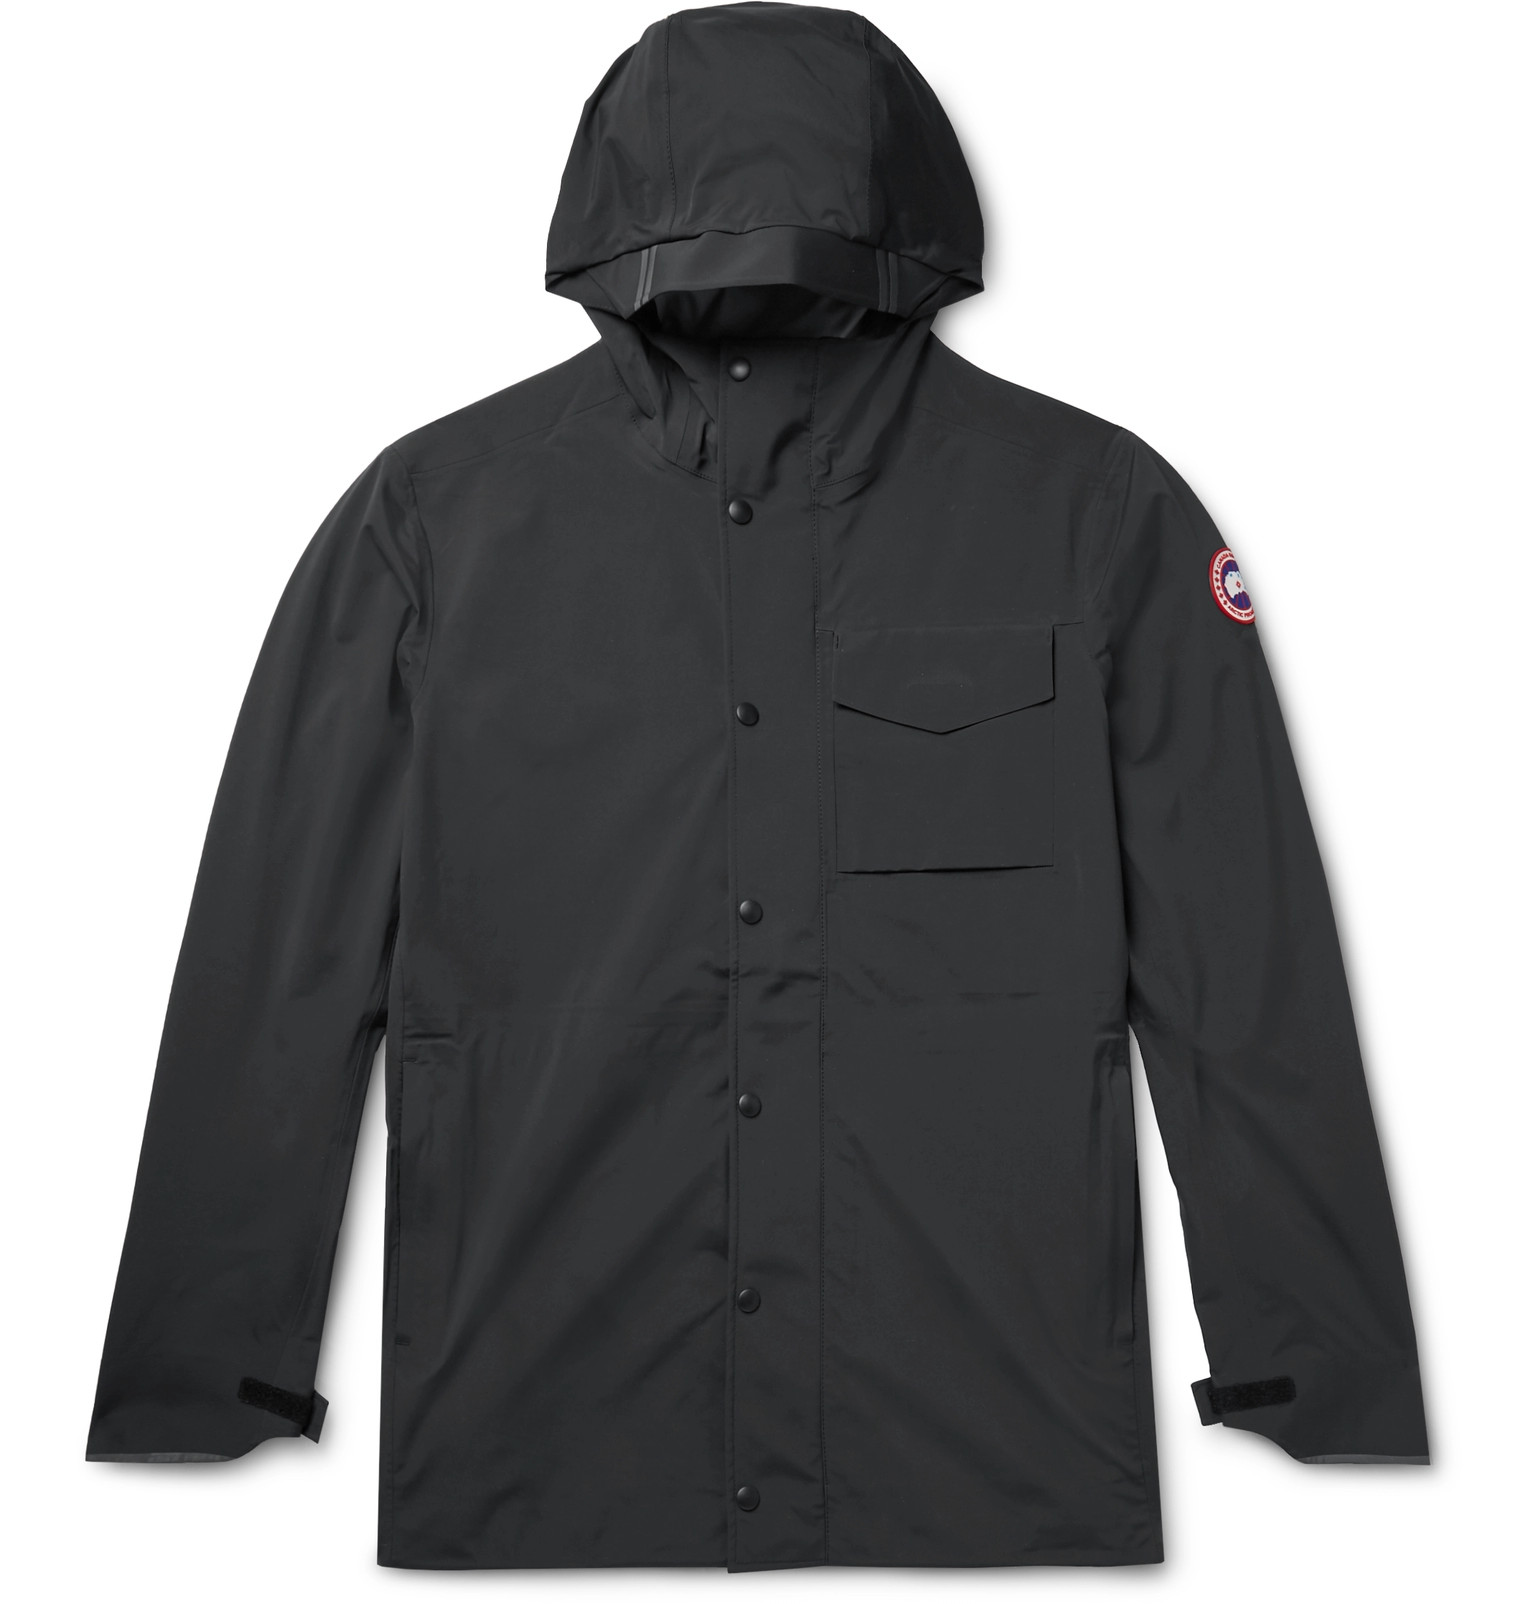 1dce3f004c Canada Goose - Nanaimo Tri-Durance Hooded Jacket